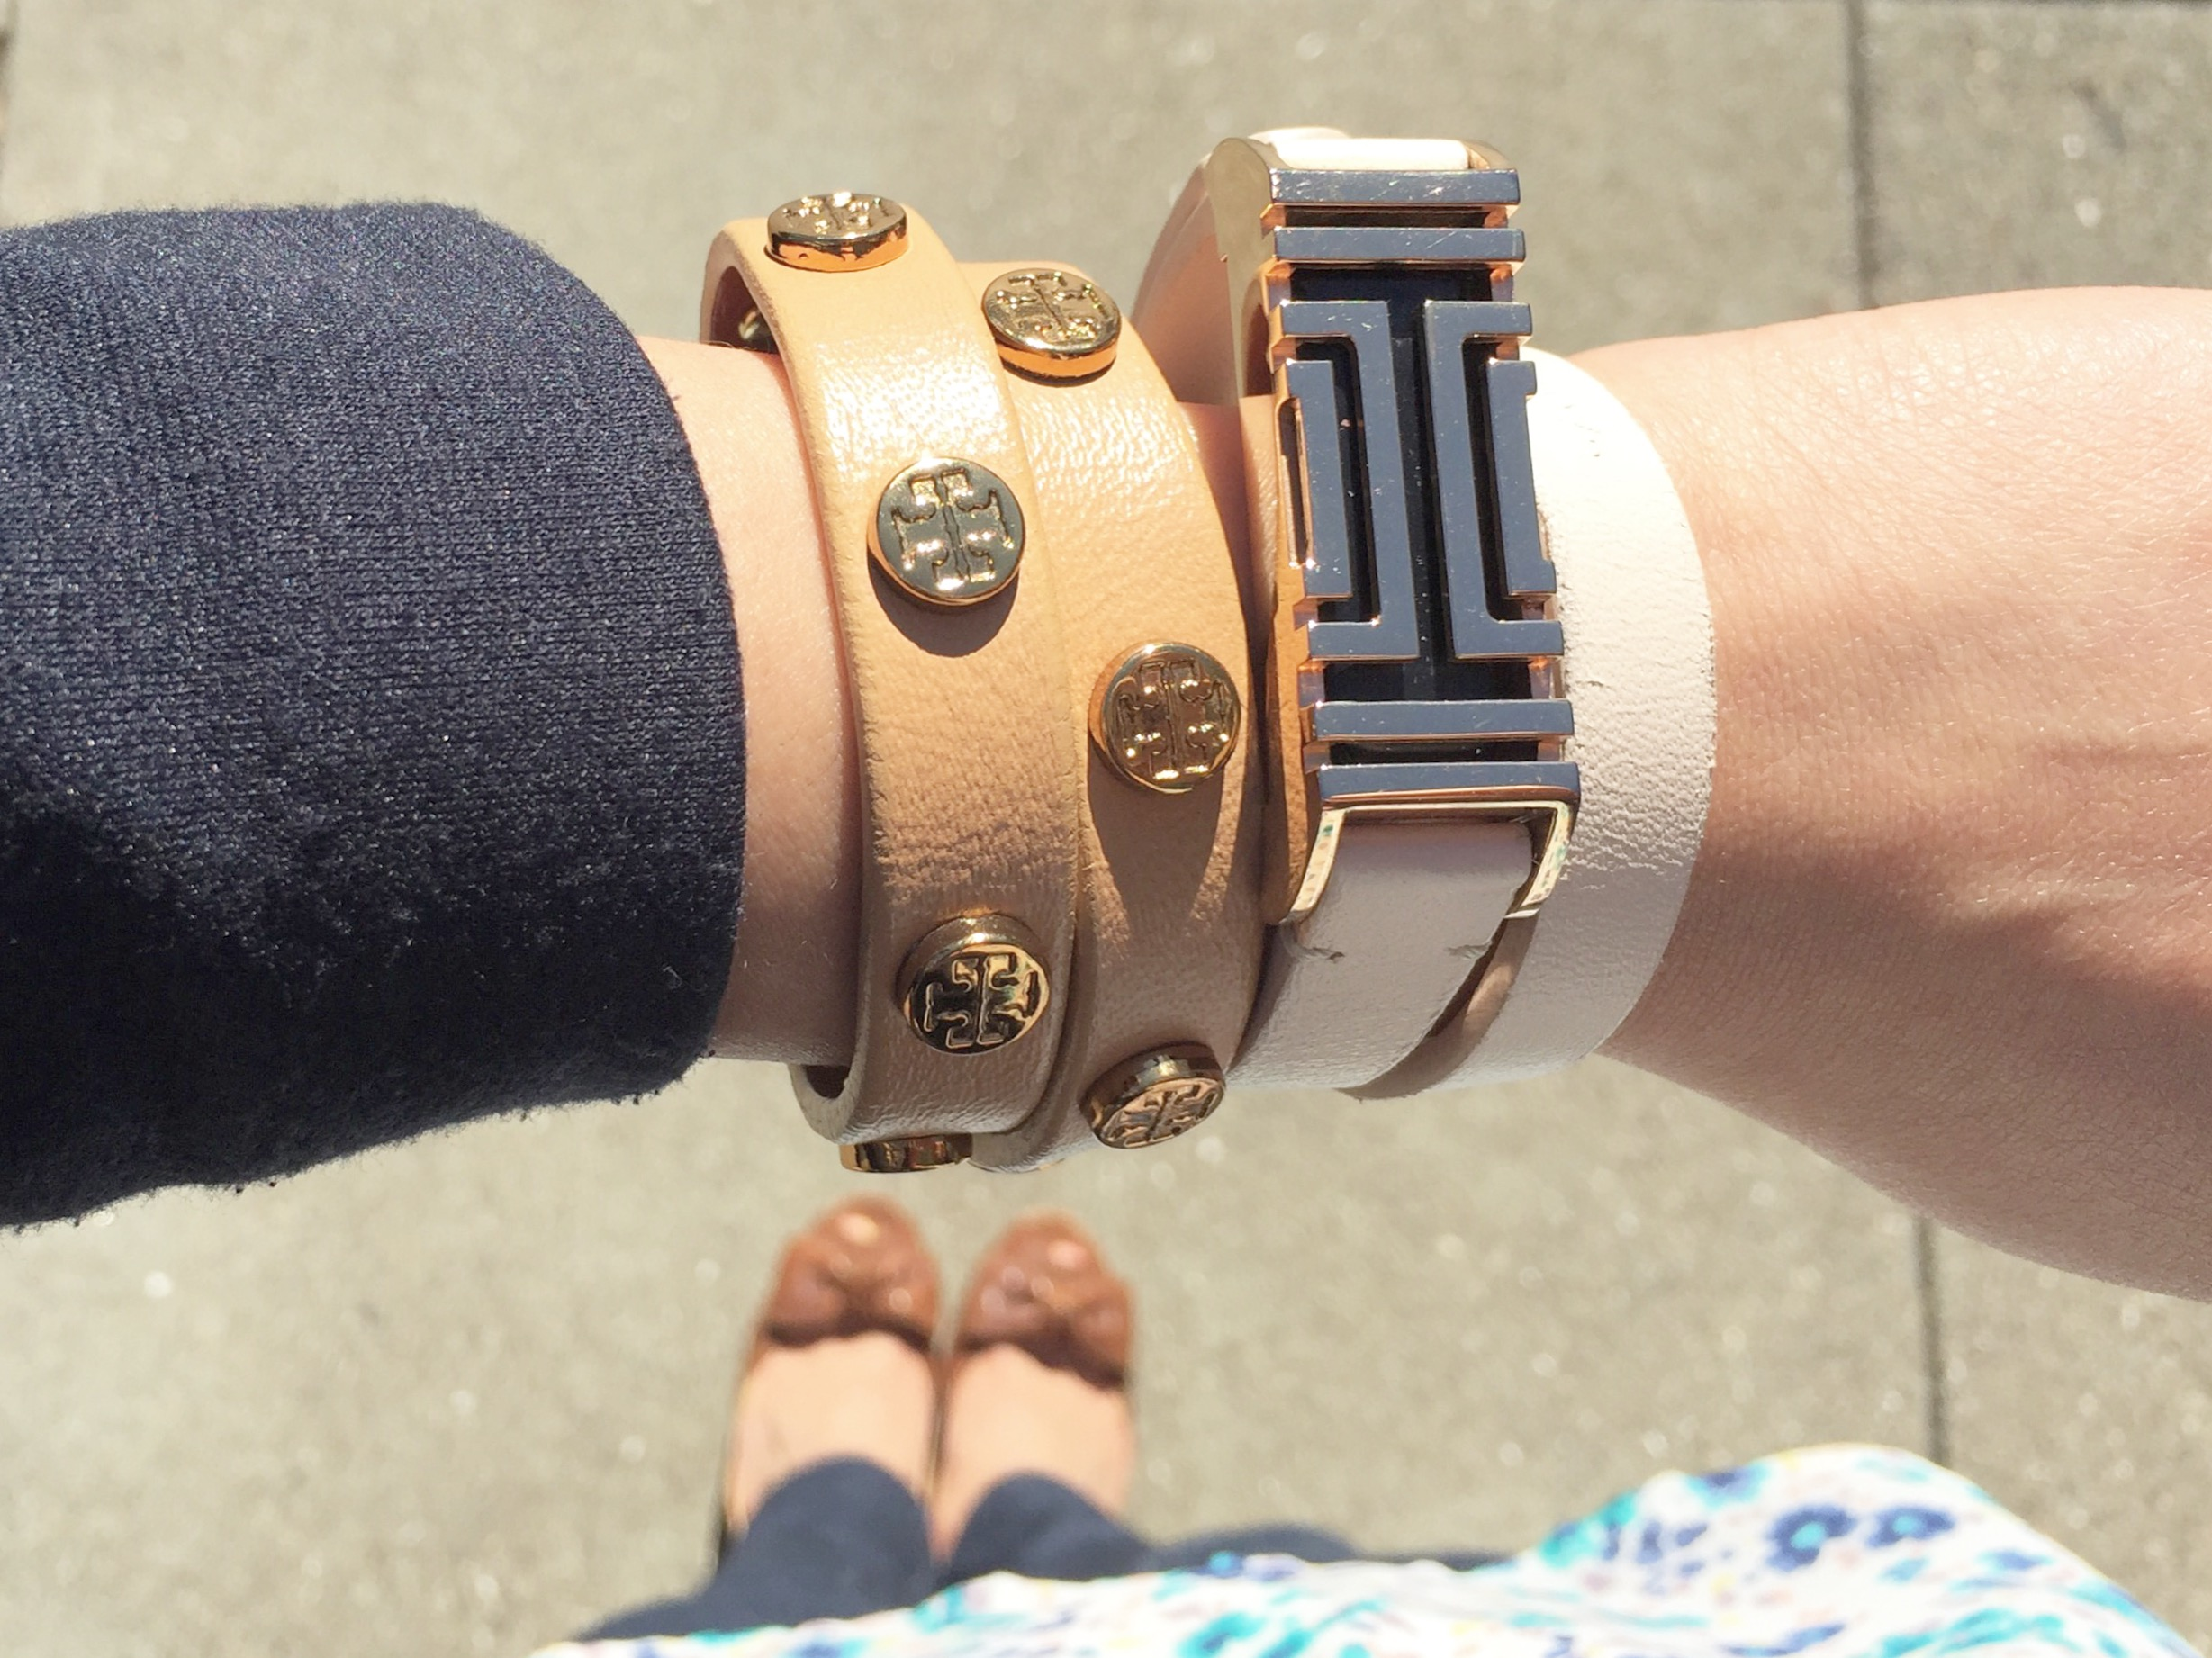 Tory Burch for Fitbit - Berniedette of Petite And Toned